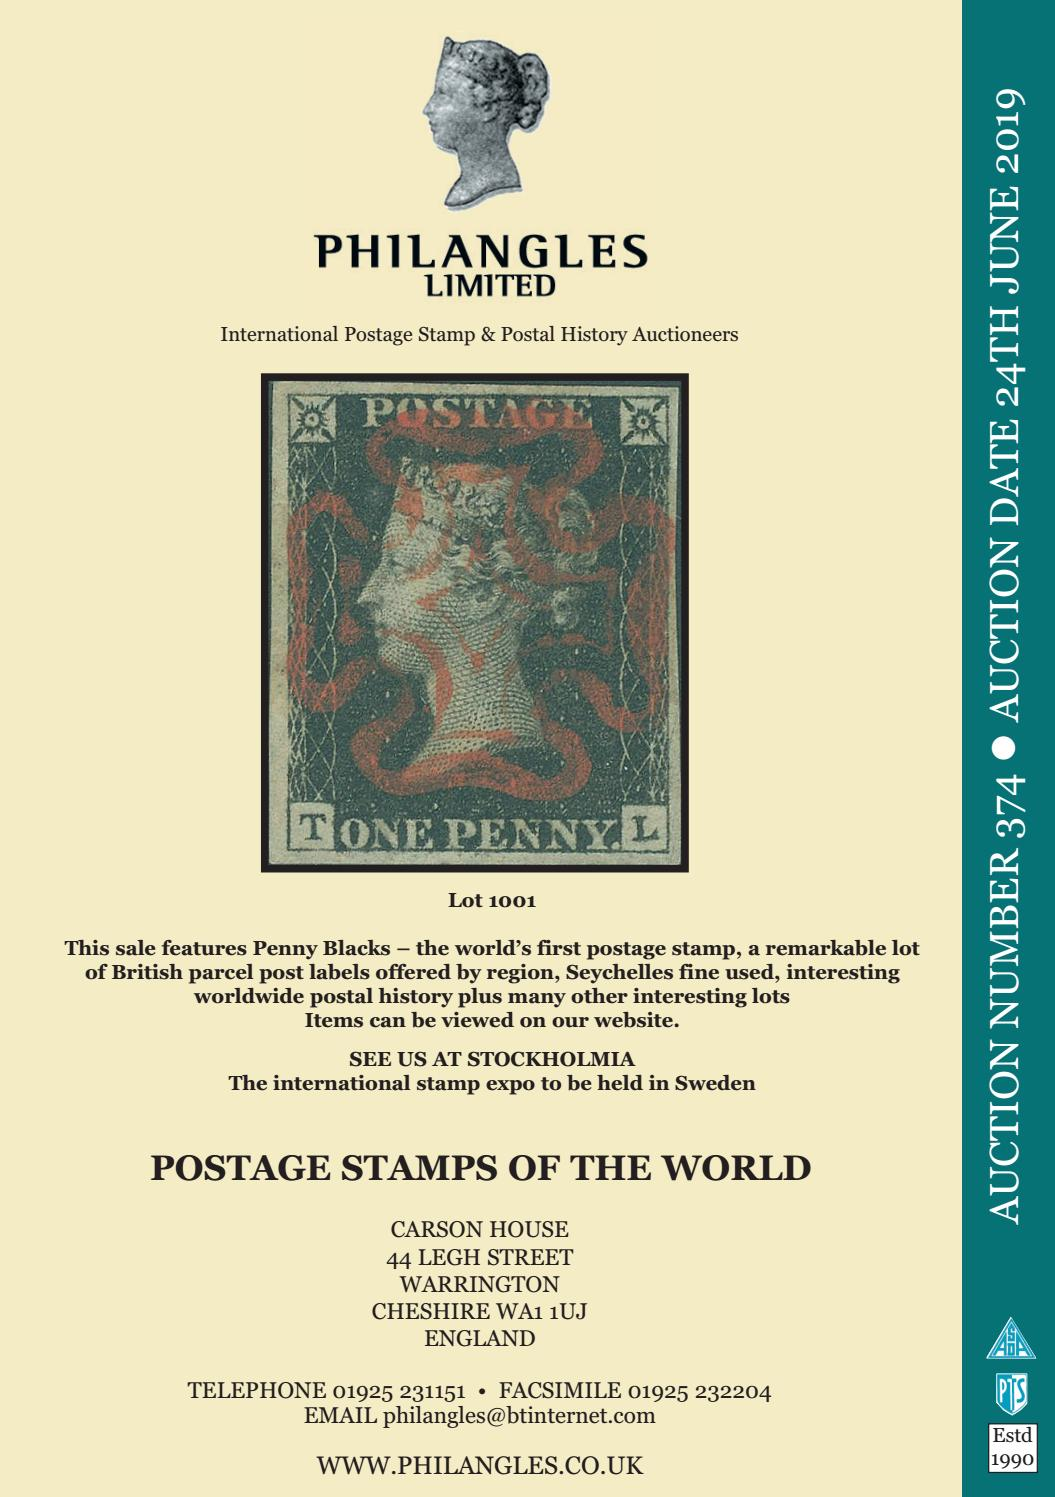 10 x Royal Mail 1st Class Stamps 2004 Lord of the Rings stamps featuring places and characters from the Books by Royal Mail Stamps Lord of the Ring Stamps for Postage